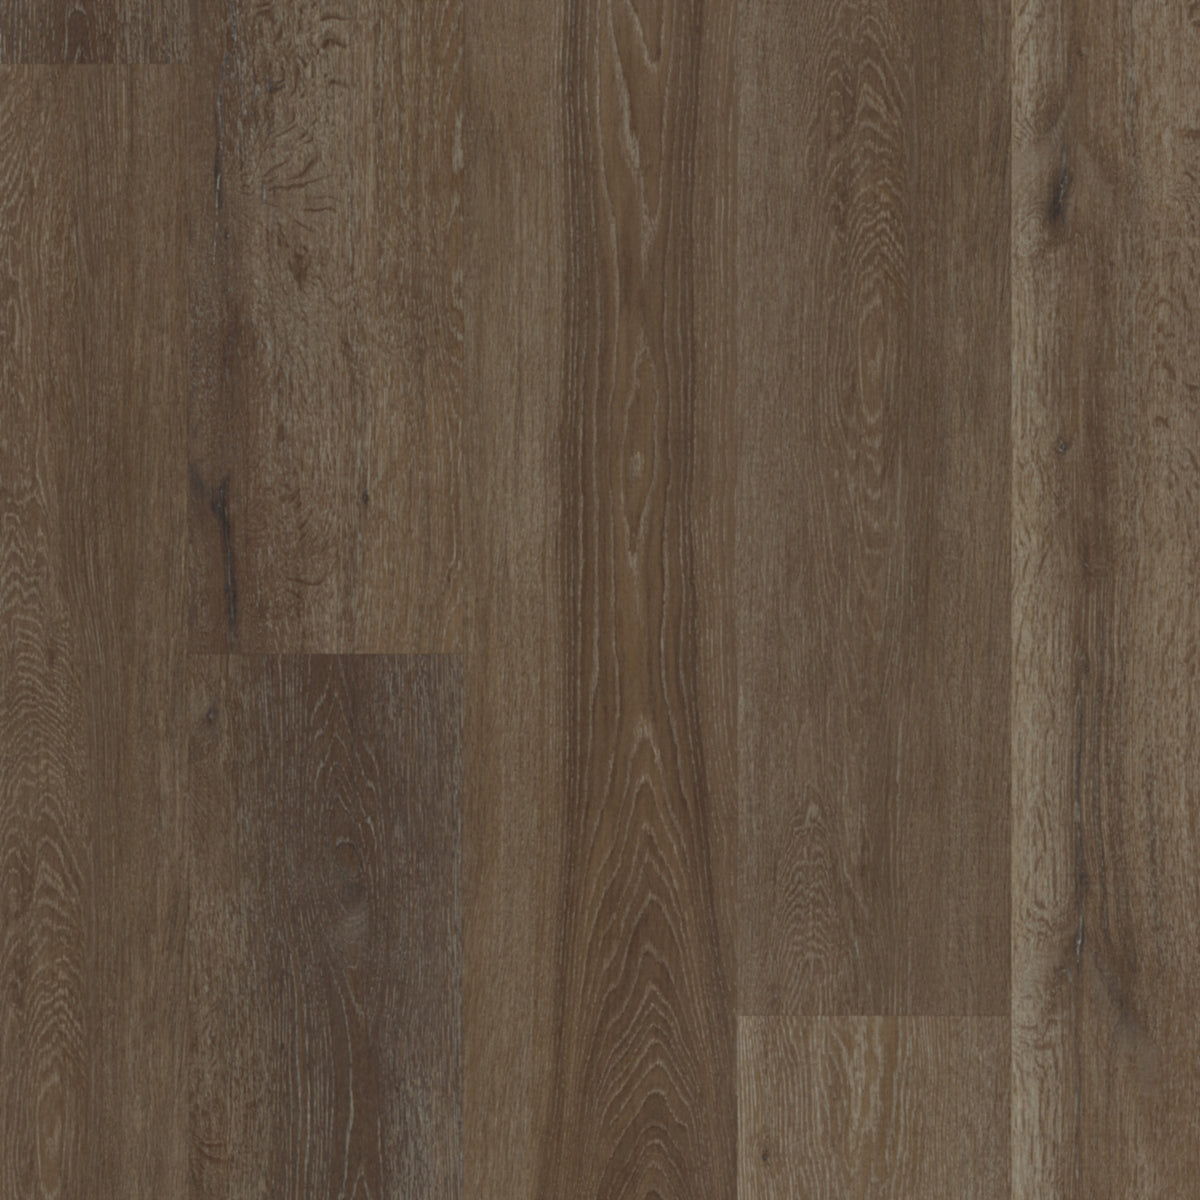 Karndean Korlok Select 56 in. x 9 in. Luxury Vinyl Tile - Washed Velvet Ash